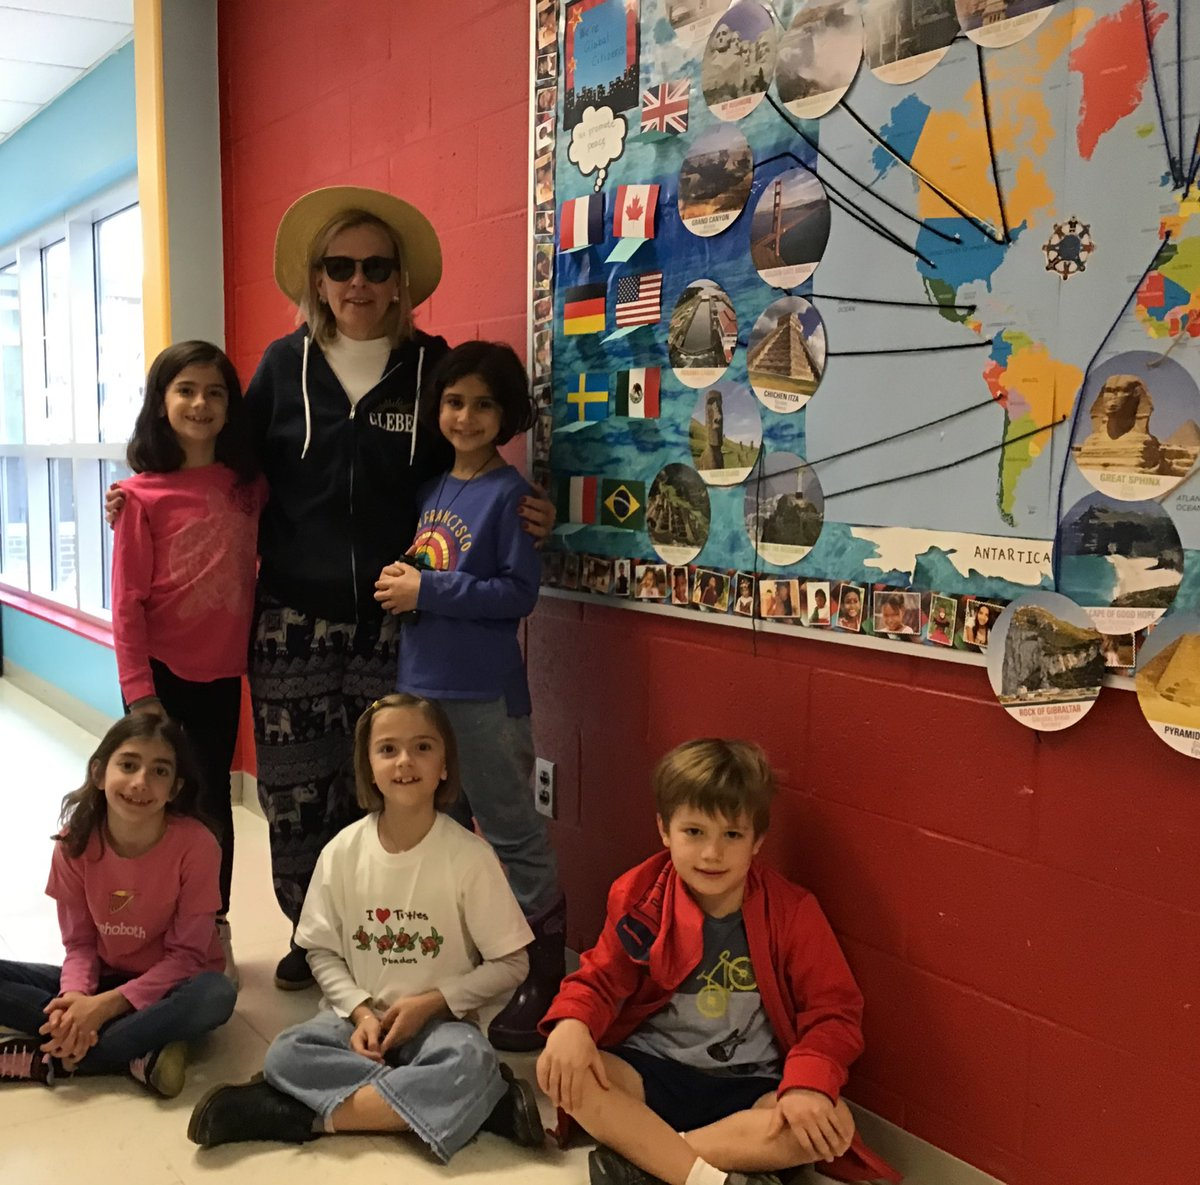 2nd graders dressed as tourist for Kindness Week <a target='_blank' href='http://twitter.com/GlebeAPS'>@GlebeAPS</a> <a target='_blank' href='http://twitter.com/APSVirginia'>@APSVirginia</a> <a target='_blank' href='http://twitter.com/glebepta'>@glebepta</a> <a target='_blank' href='http://search.twitter.com/search?q=GlebeEagles'><a target='_blank' href='https://twitter.com/hashtag/GlebeEagles?src=hash'>#GlebeEagles</a></a> <a target='_blank' href='https://t.co/C6dKrjZVty'>https://t.co/C6dKrjZVty</a>